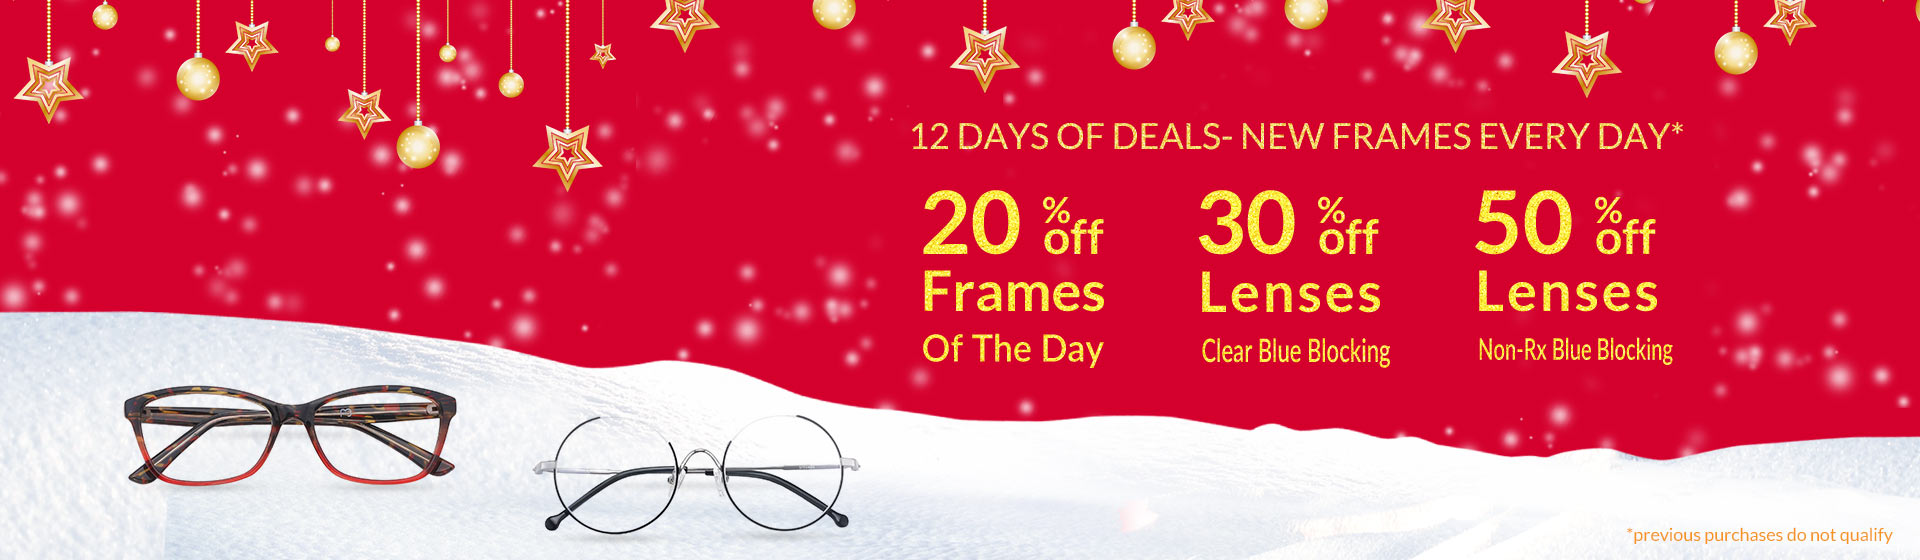 12 Days of Deals-New Frames Every Day